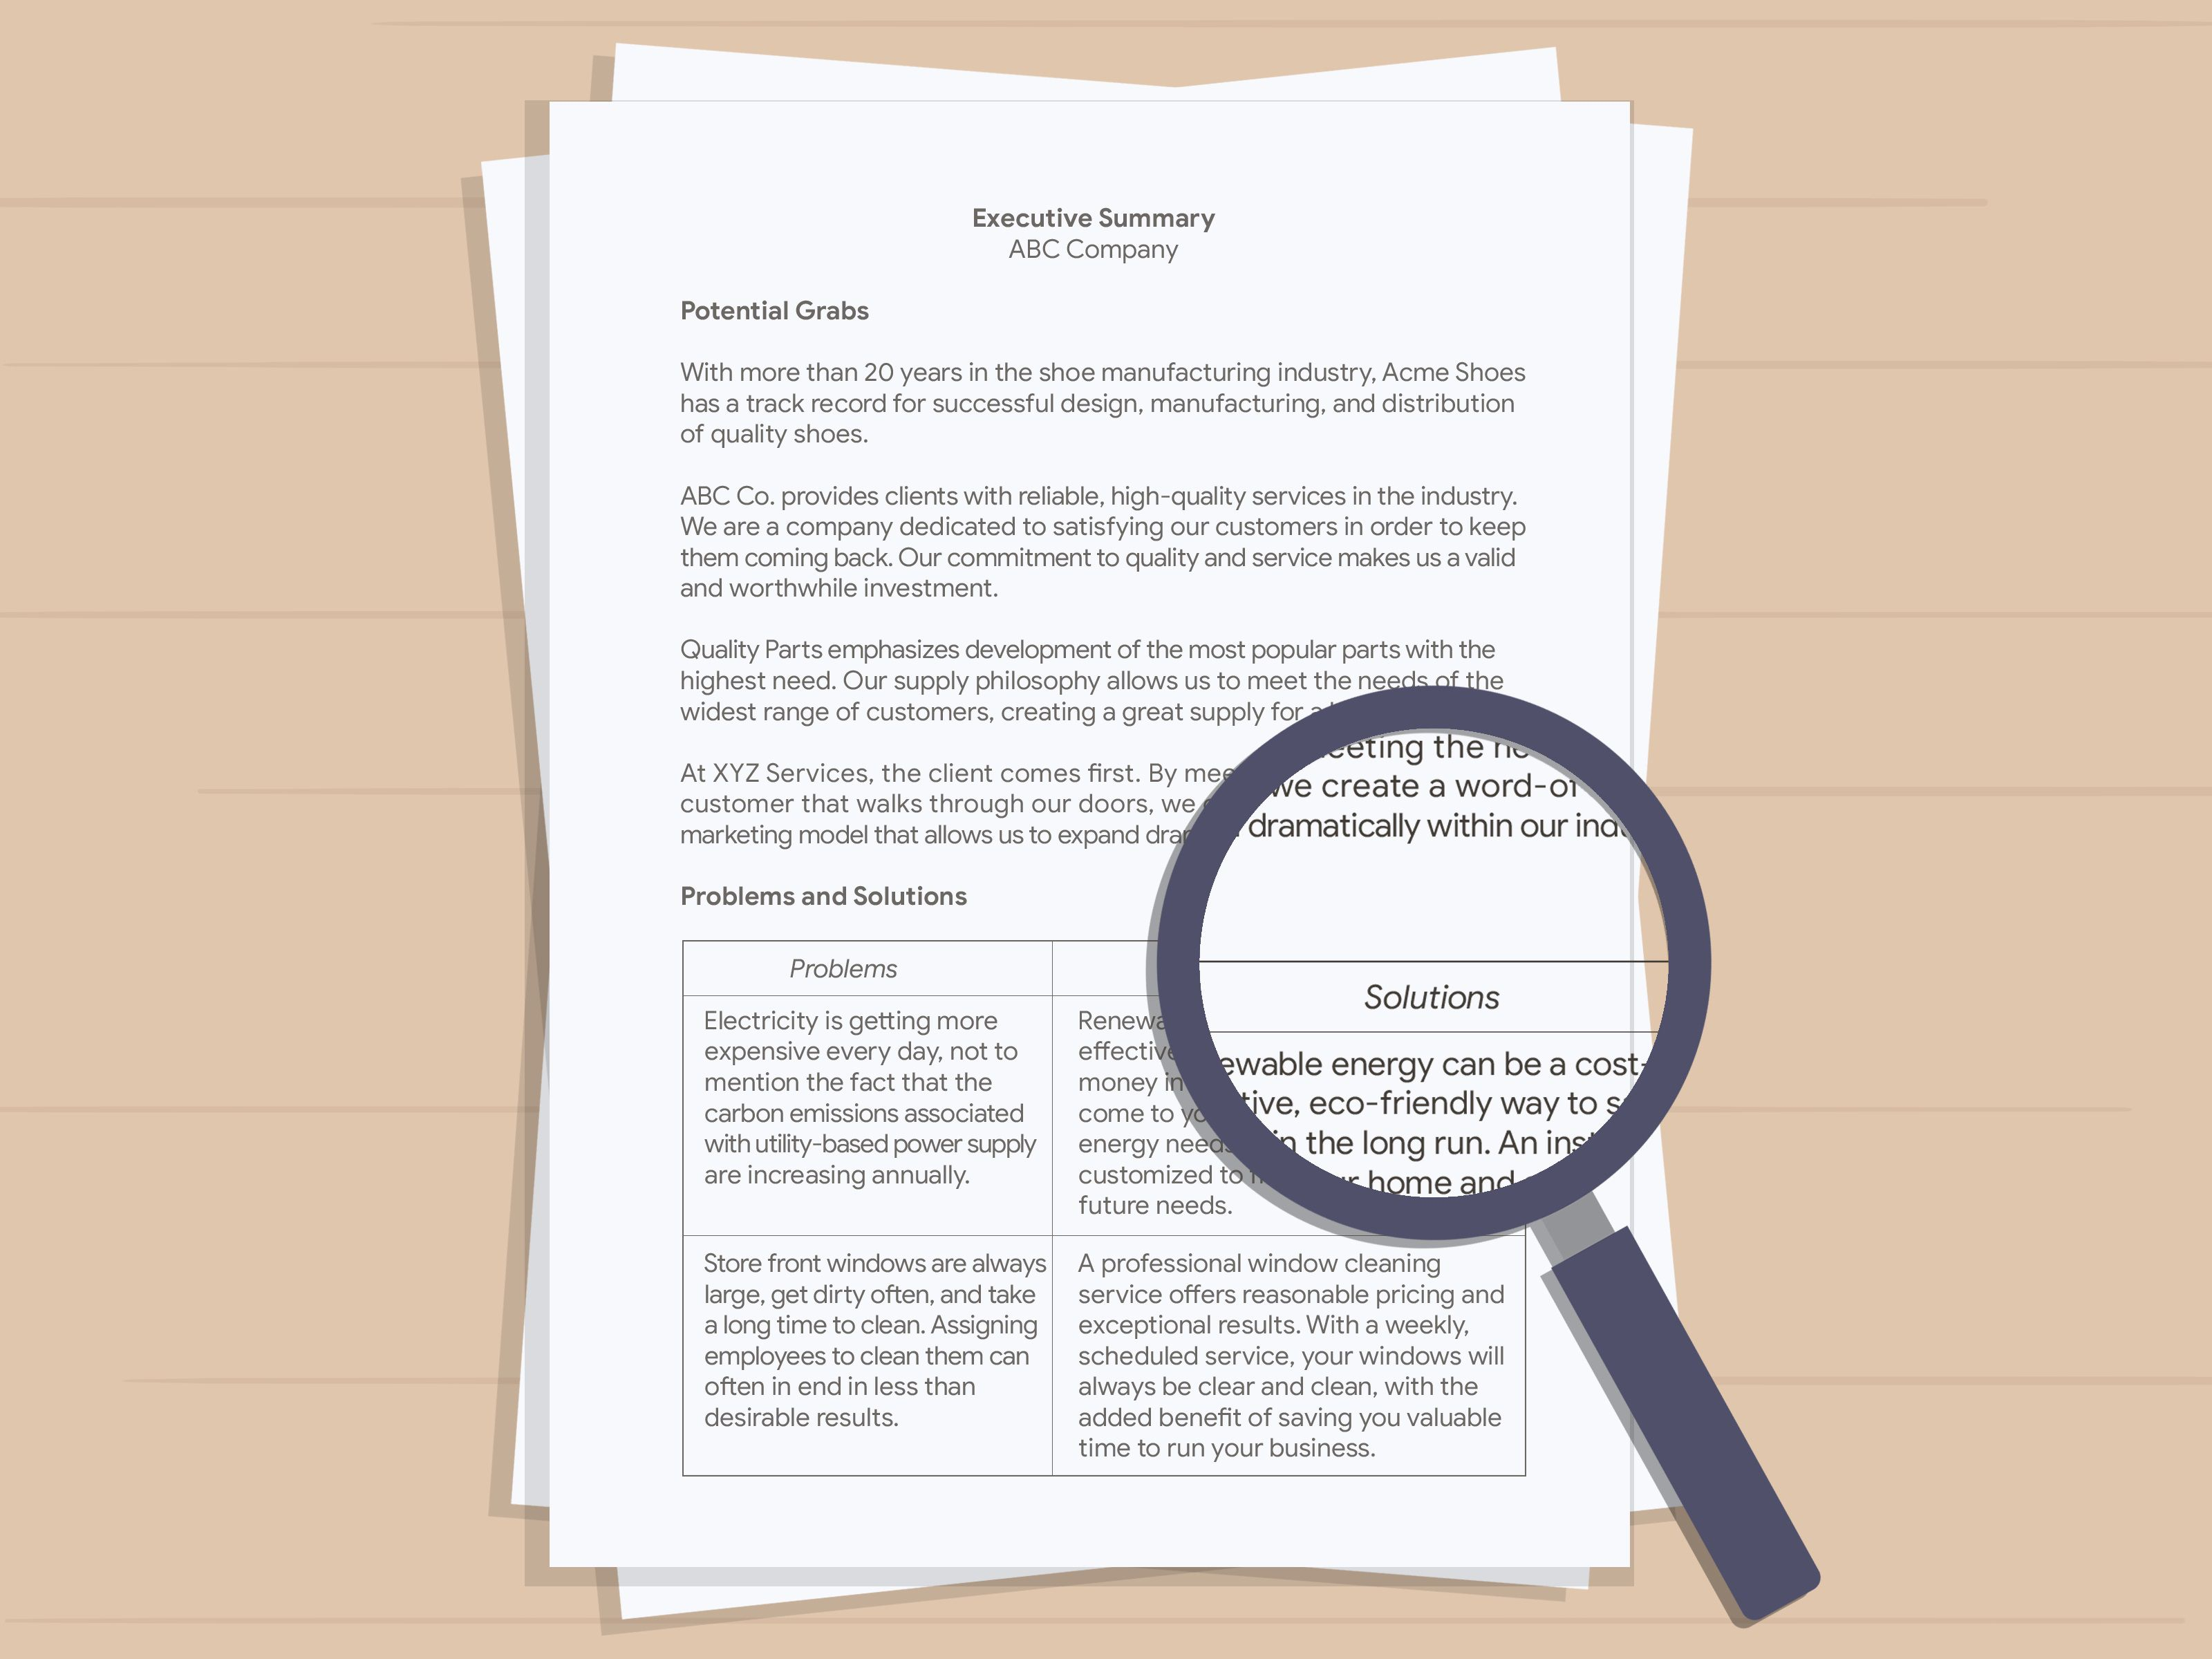 010 Magnificent Executive Summary Report Word Template Image Full